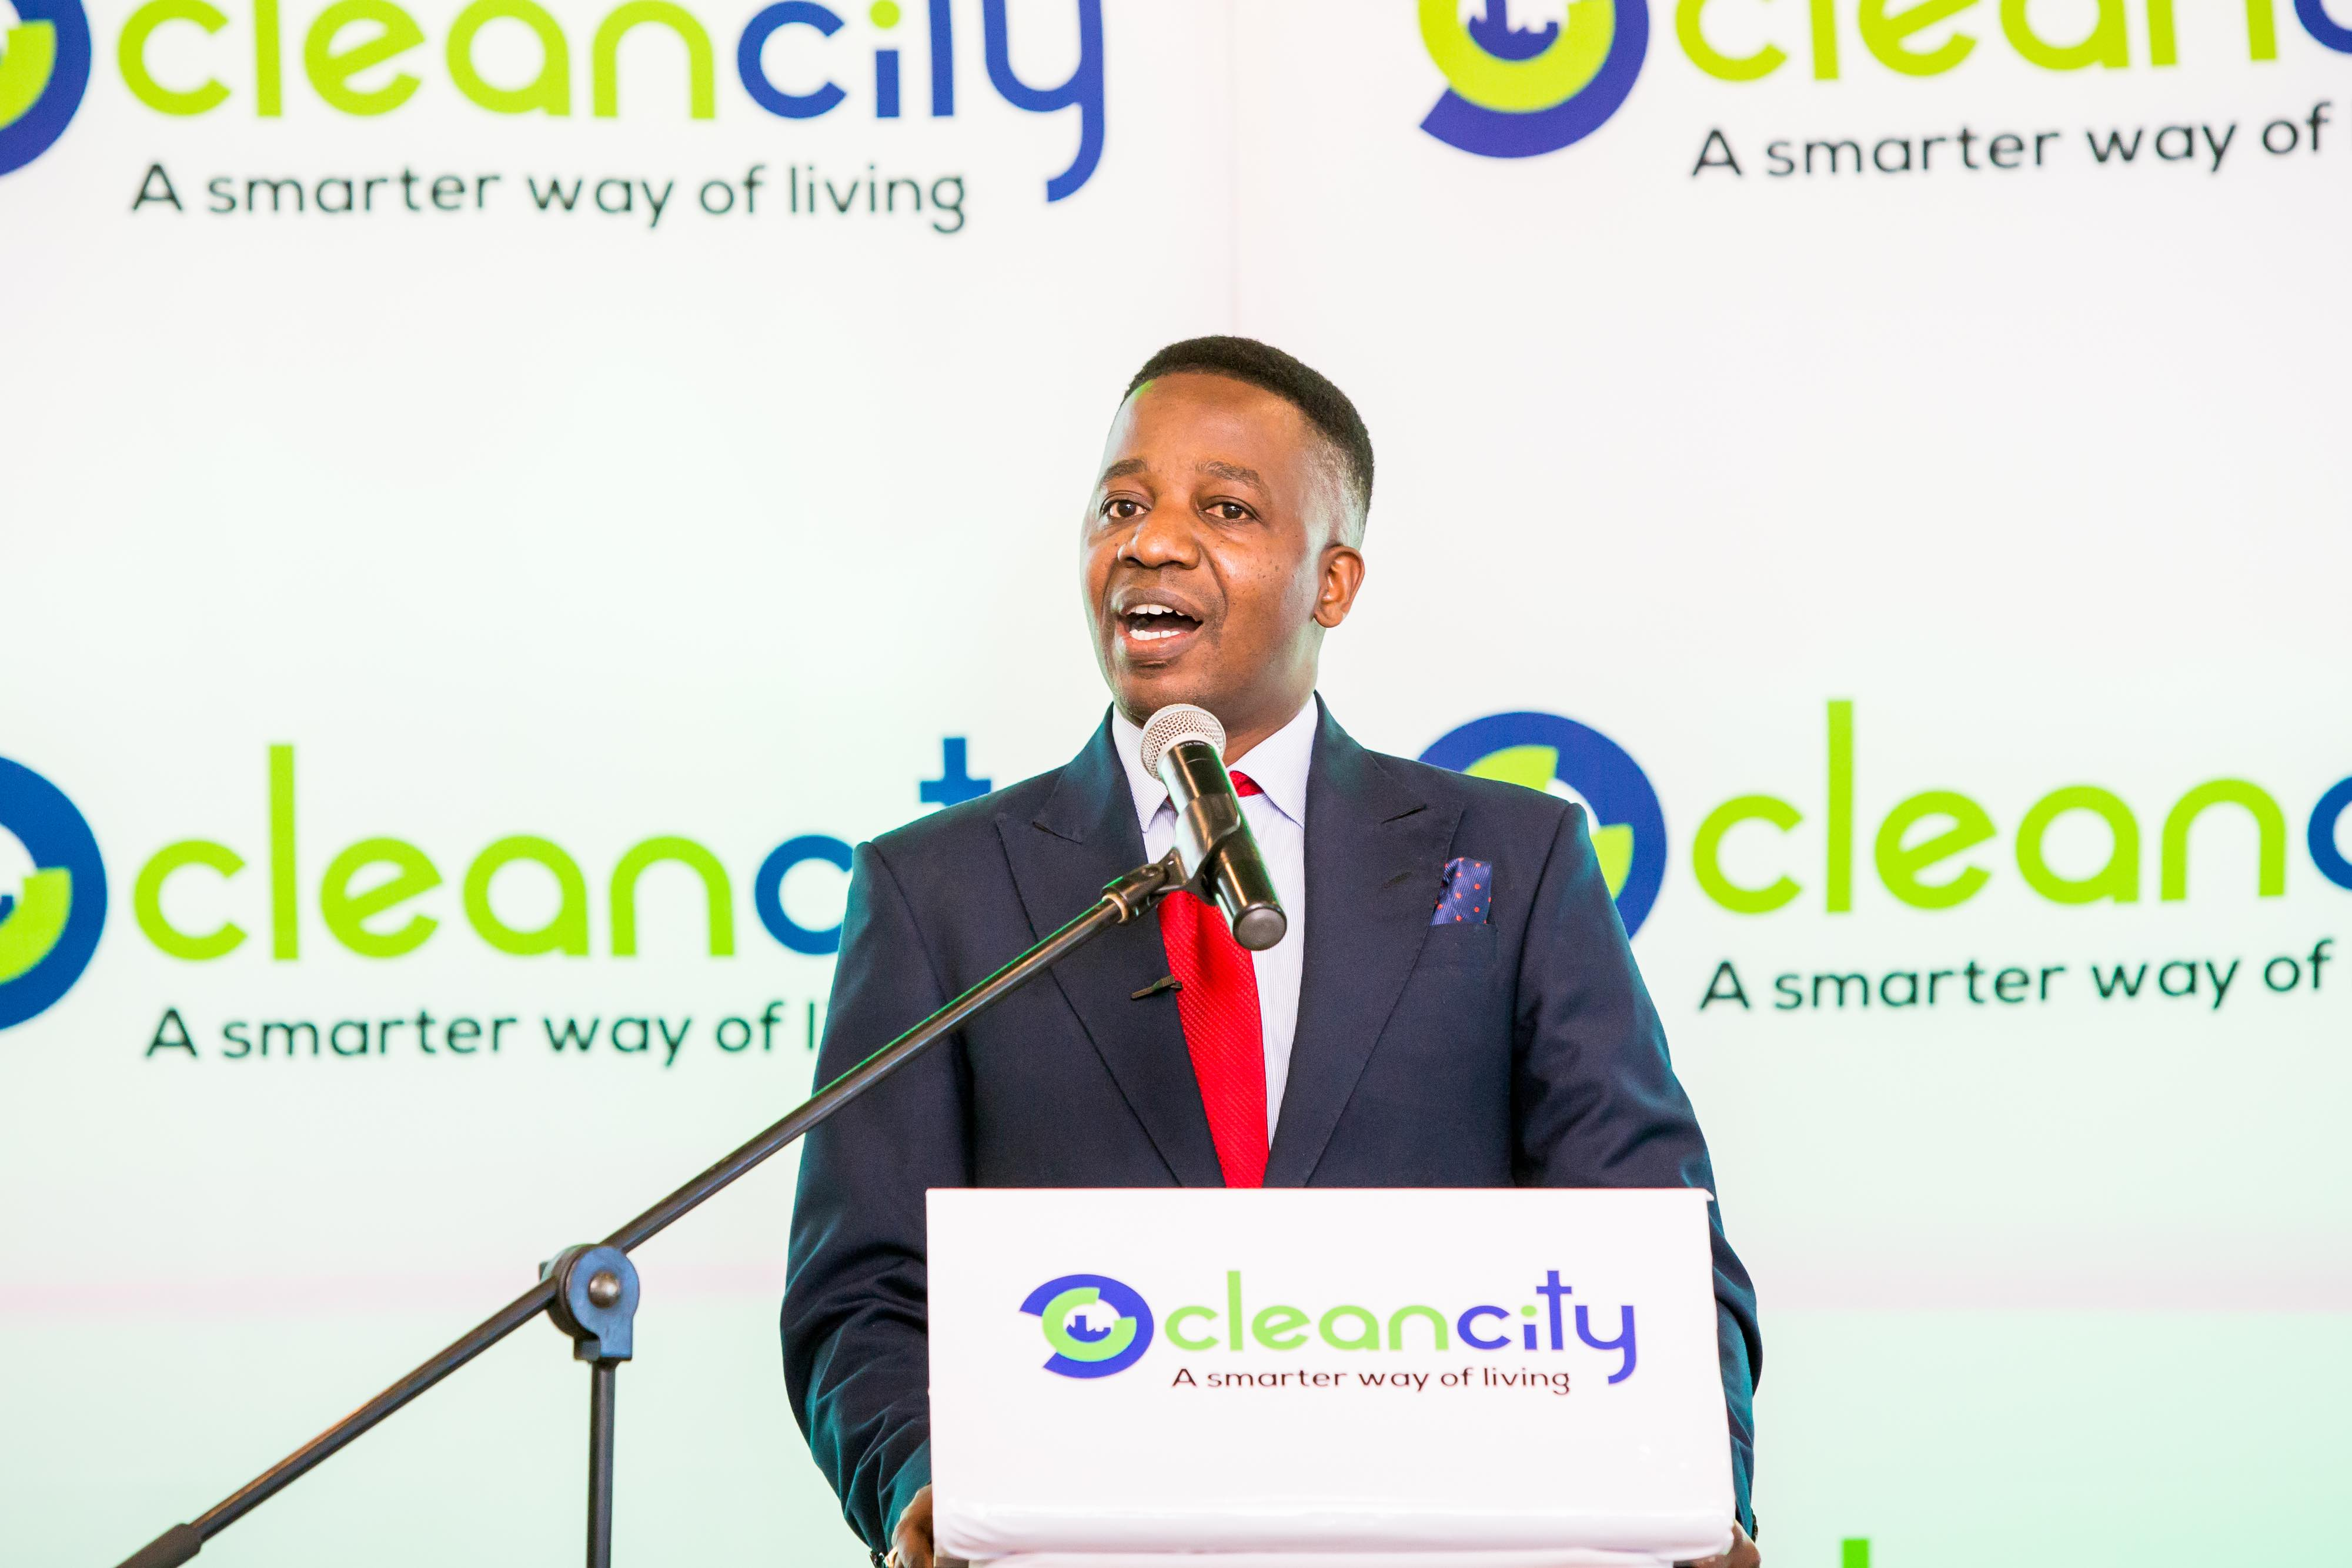 Clean City launched, set to offer sustainable waste management